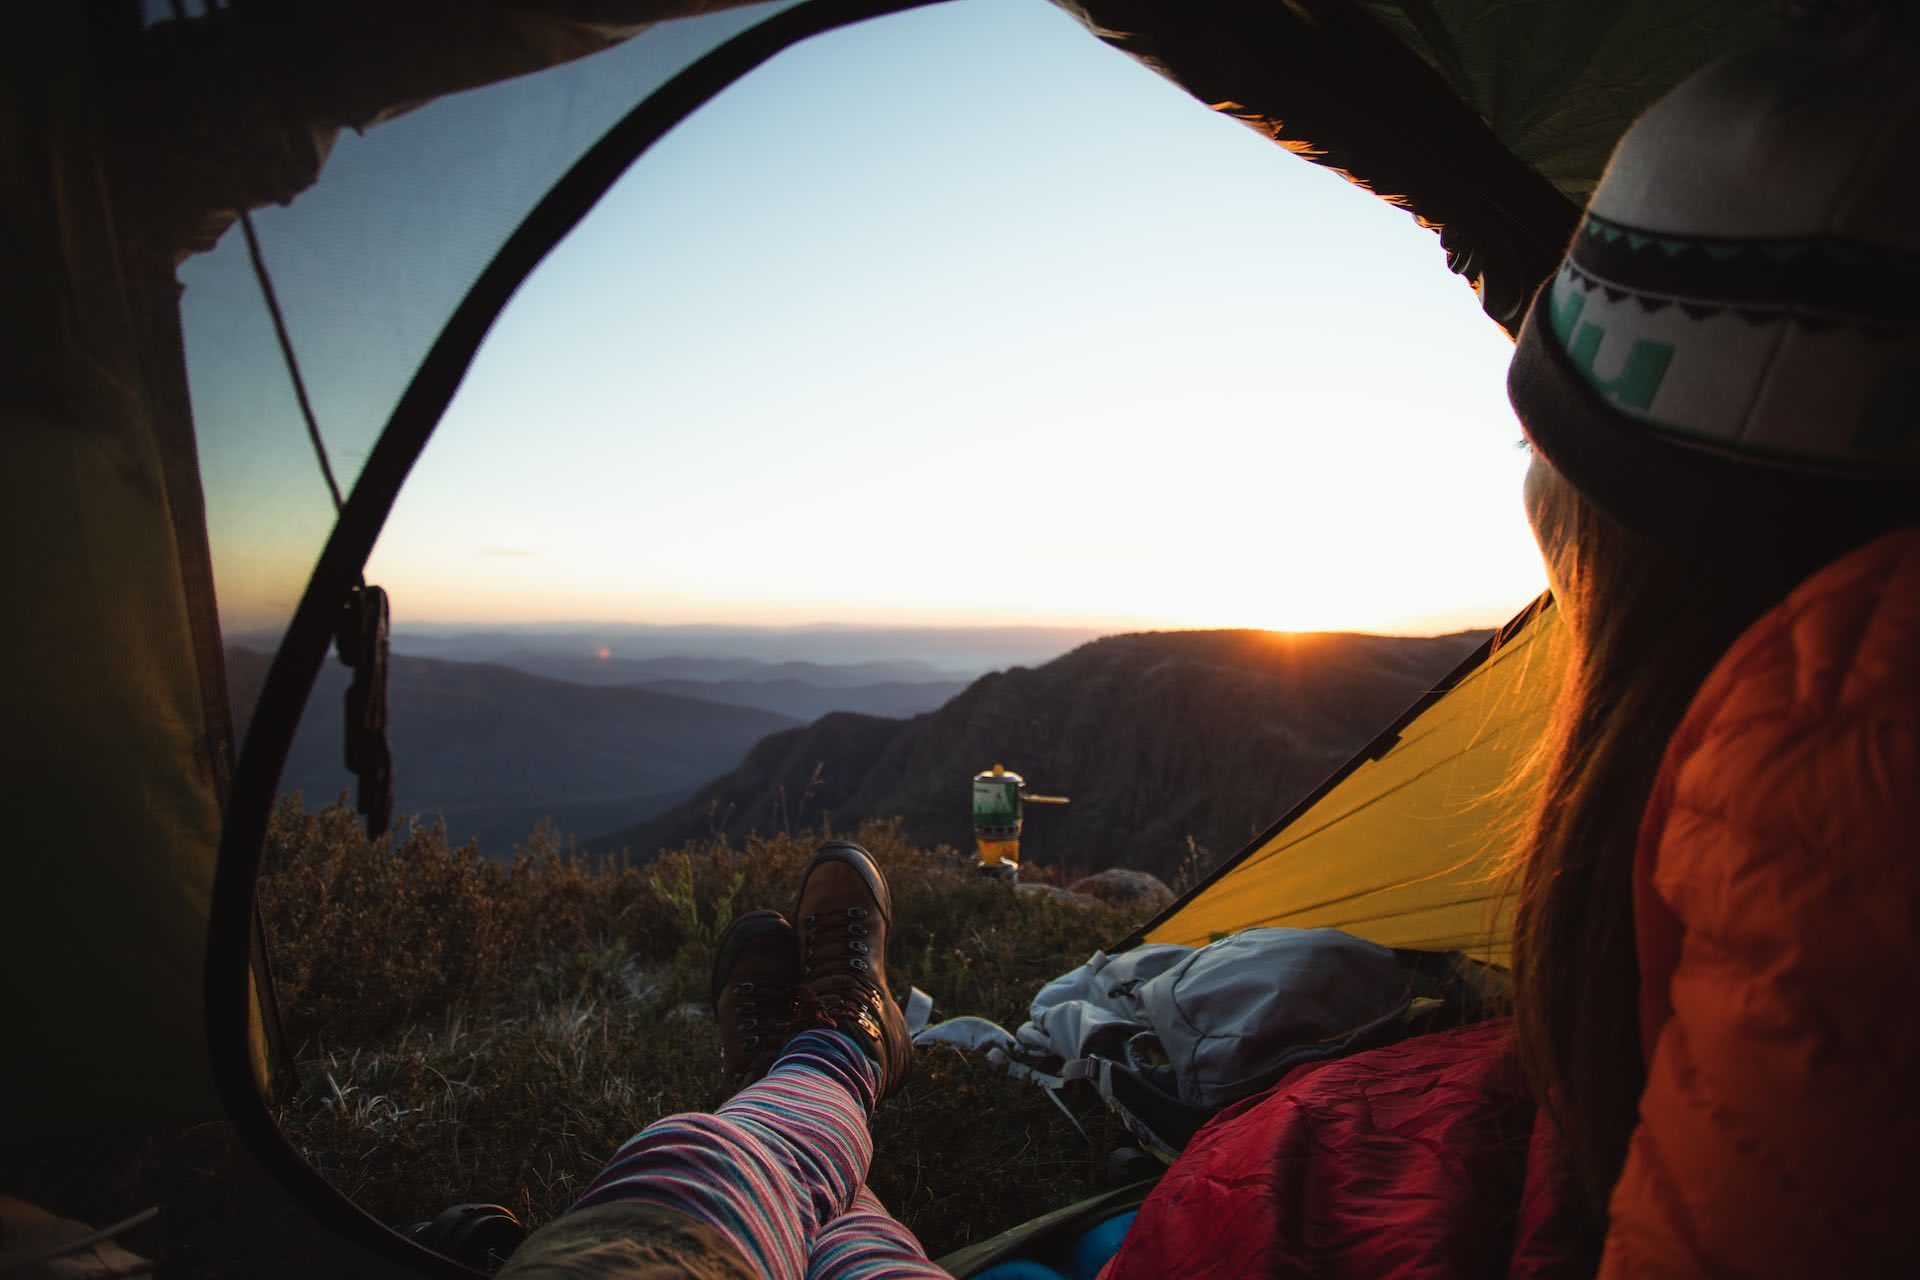 Conquer Mt Howitt And Tame The Crosscut Saw (VIC), Jamie Humby, sunrise, tent, mountain range, legs